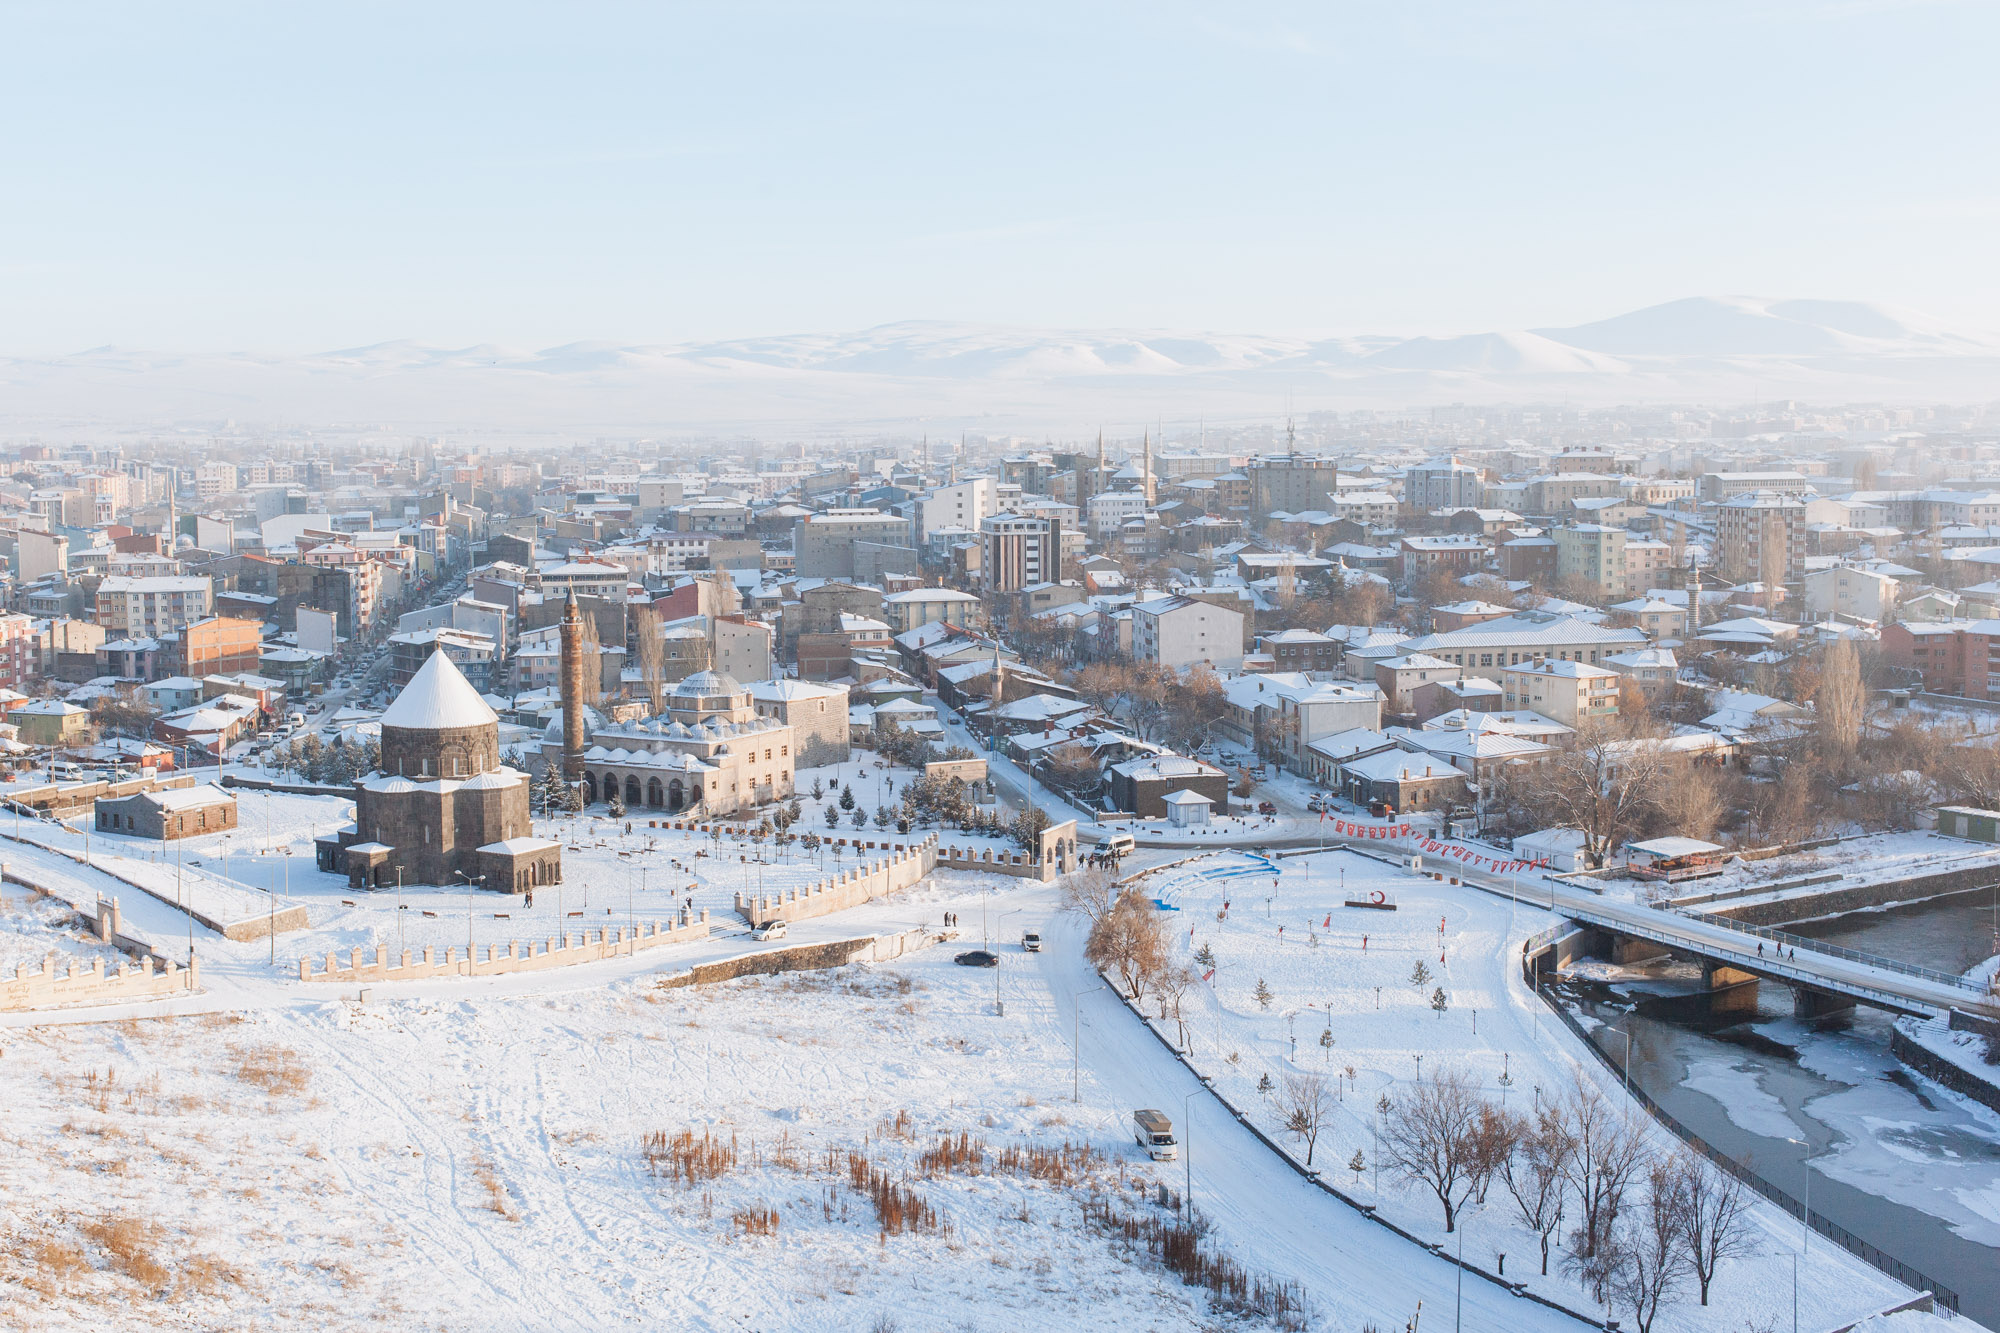 The city of Kars.